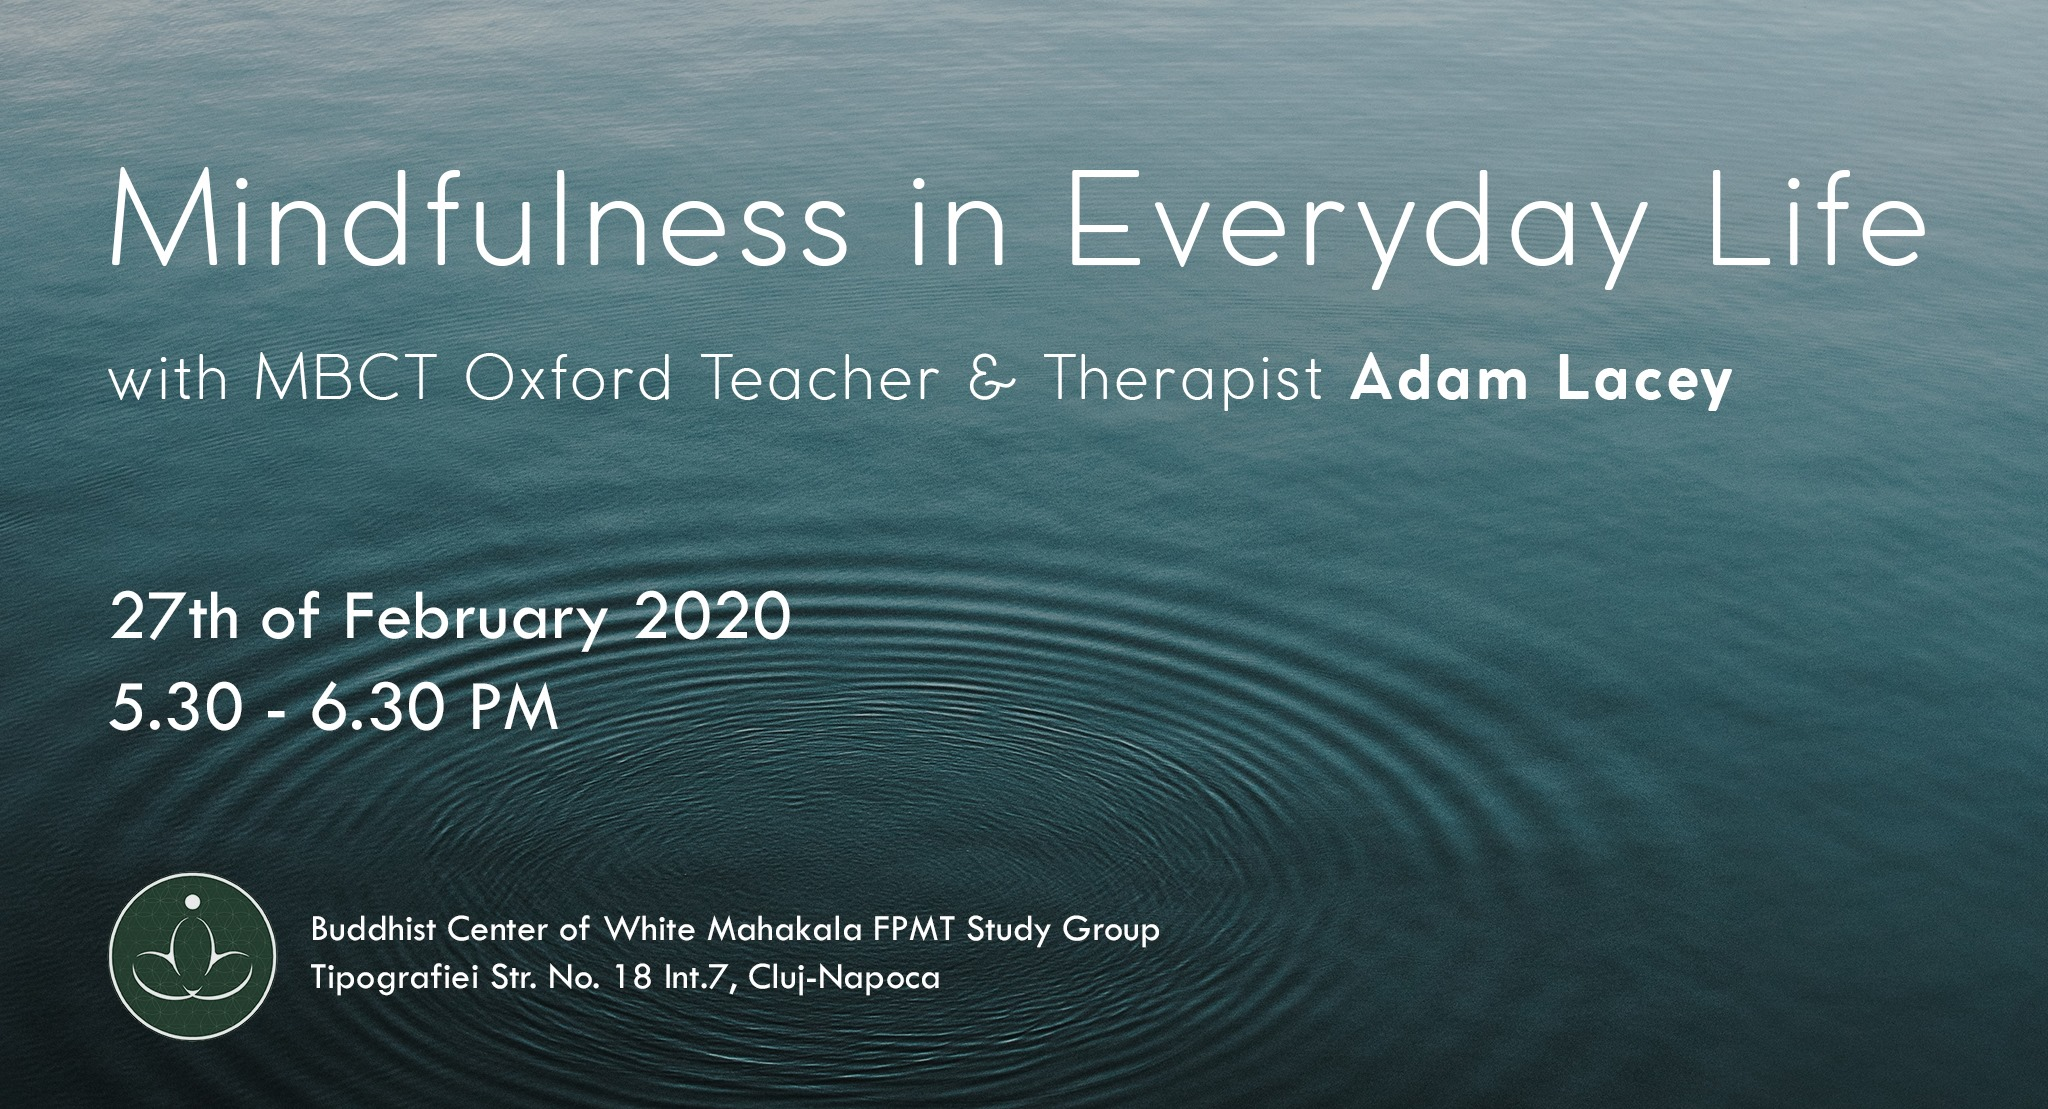 Mindfulness in Everyday Life with Adam Lacey